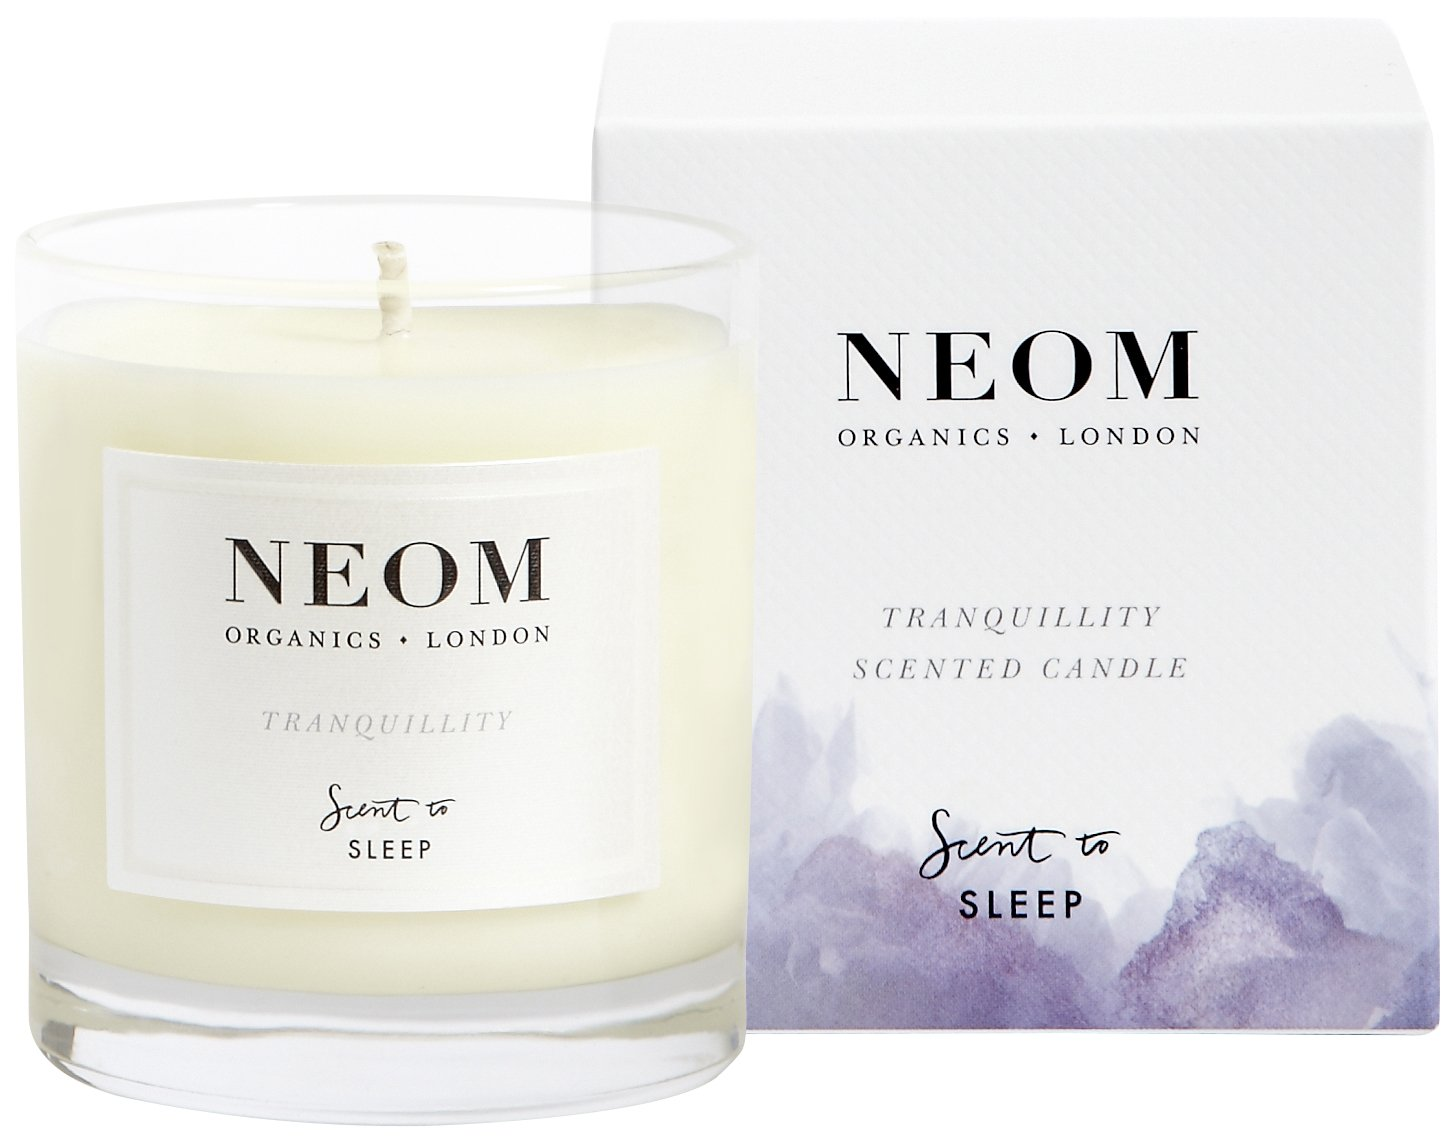 Neom Organics London Tranquillity Scented Candle 1101174